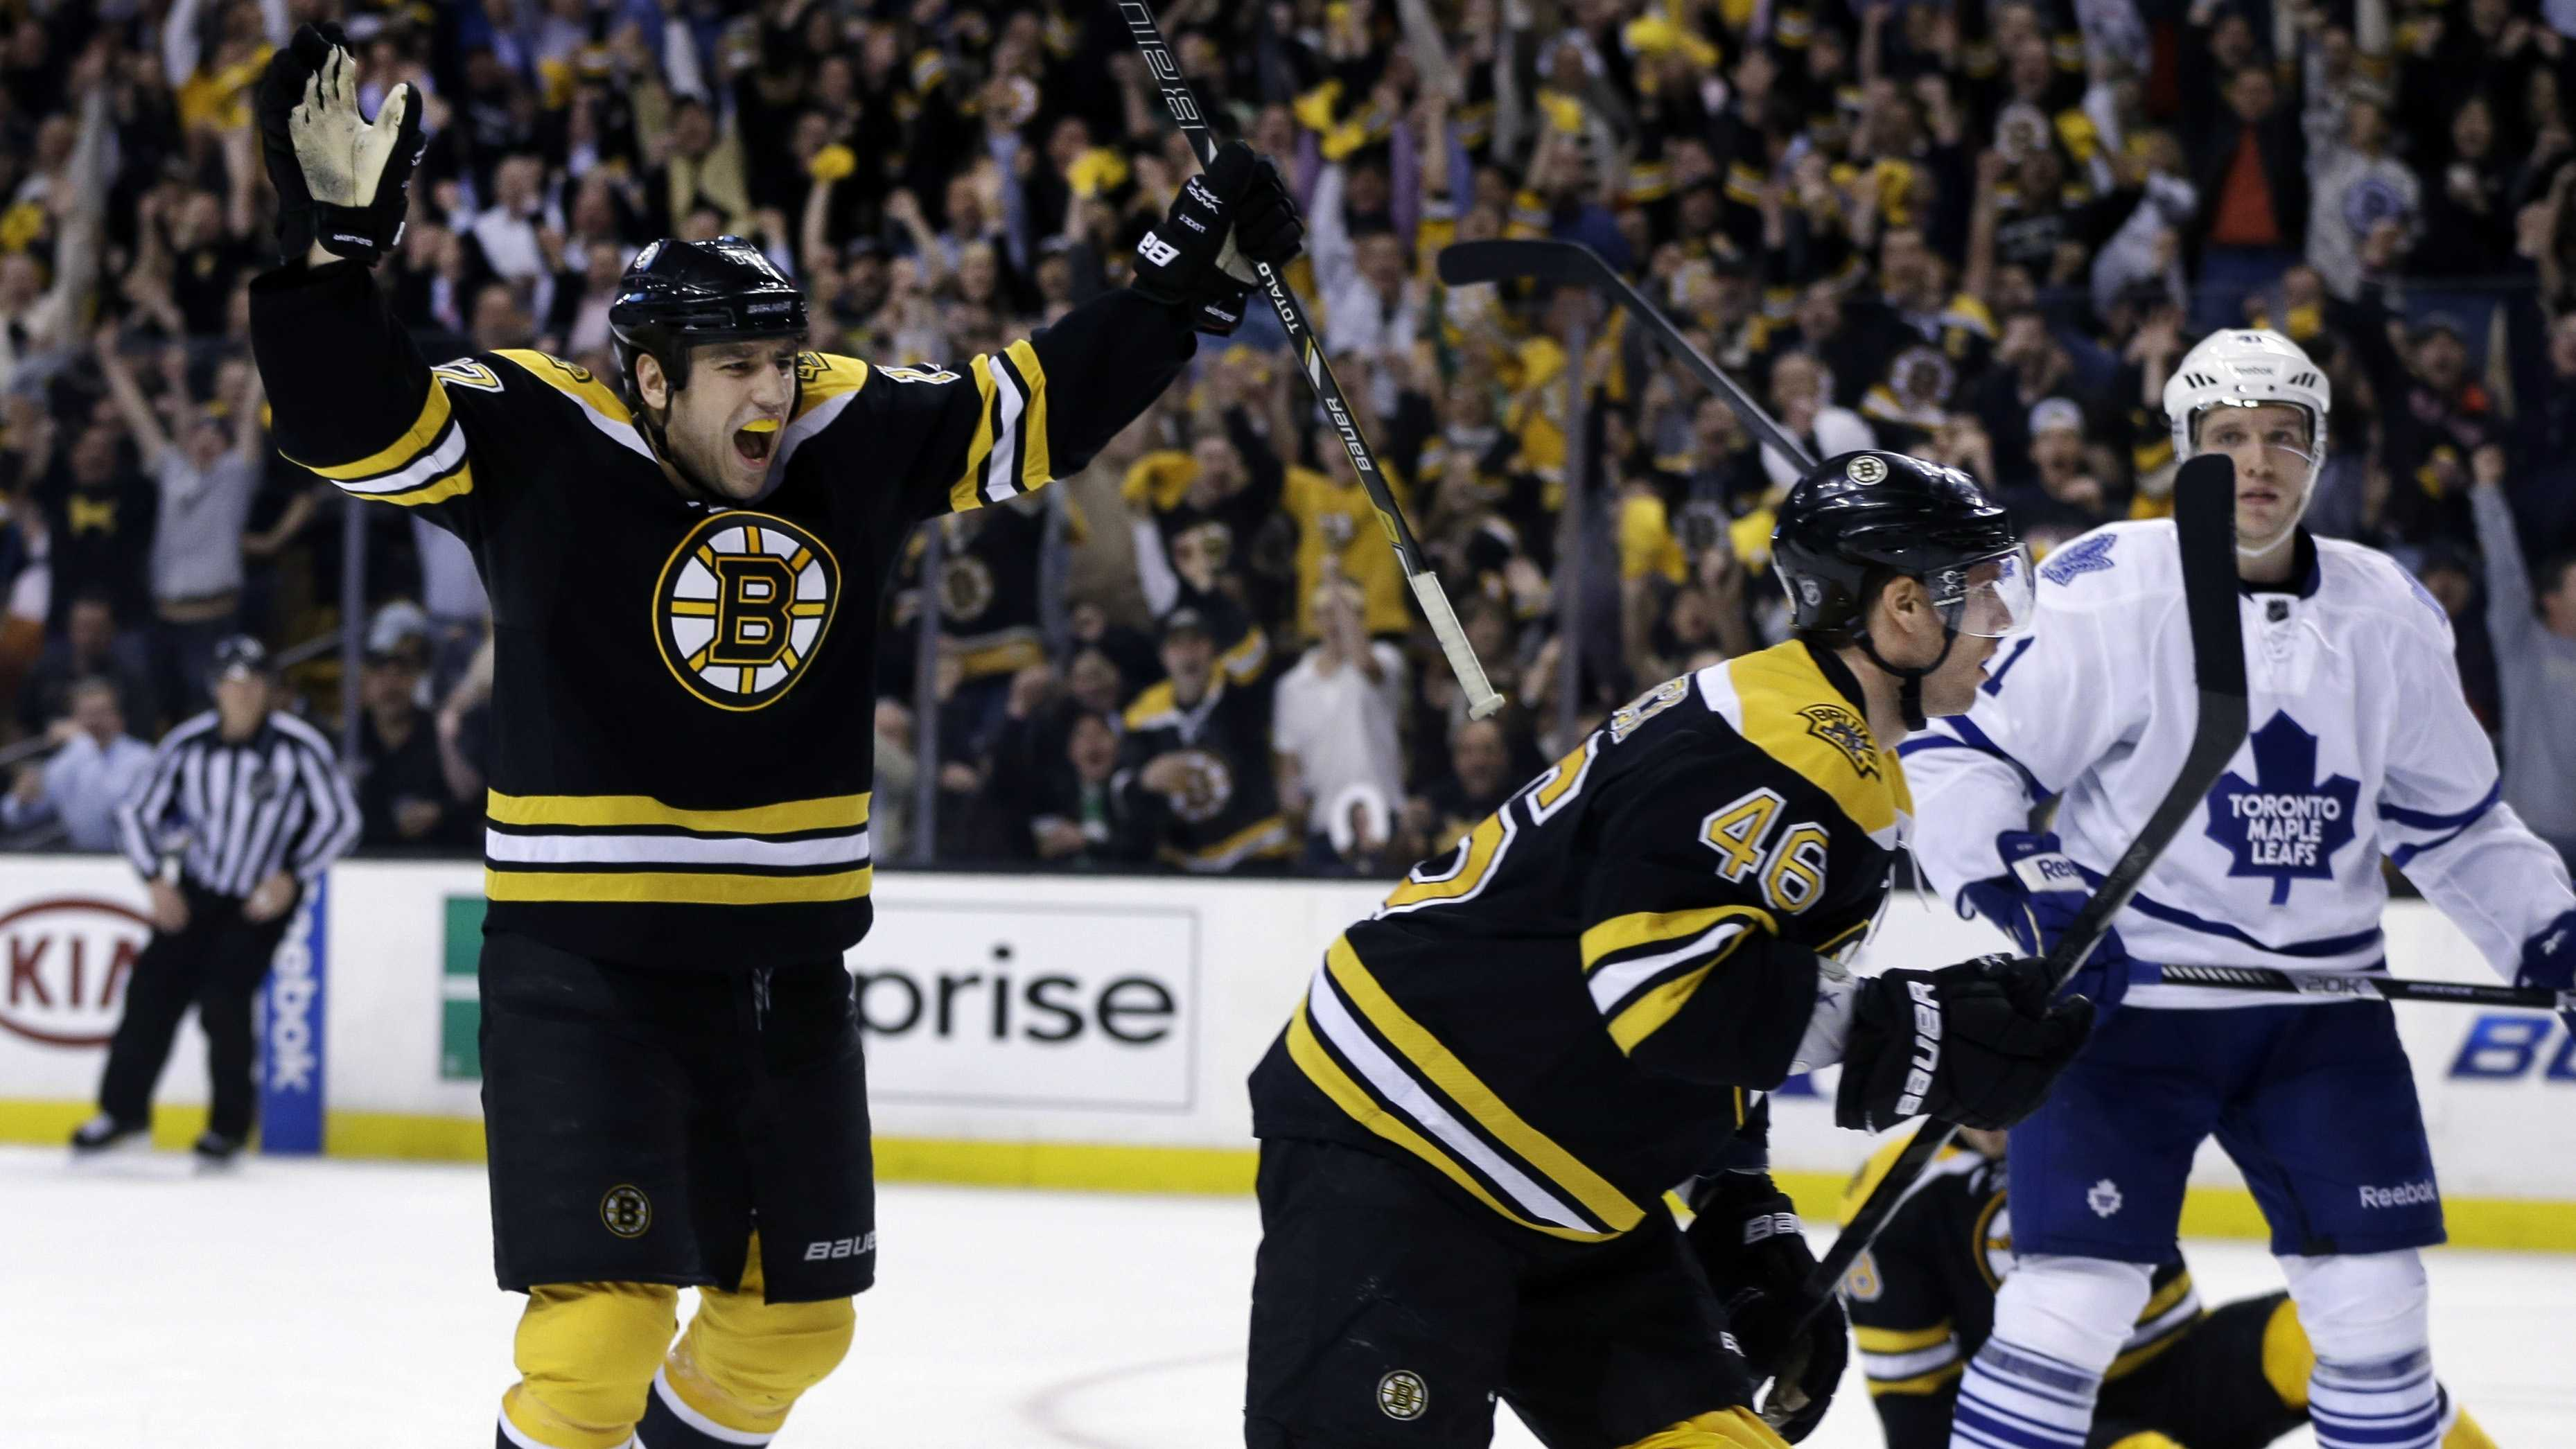 Boston Bruins left wing Milan Lucic, left, celebrates a goal scored by center David Krejci (46) as Toronto Maple Leafs left wing Nikolai Kulemin (41) looks on during the second period in Game 1 of a first-round NHL hockey playoff series, May 1, 2013.